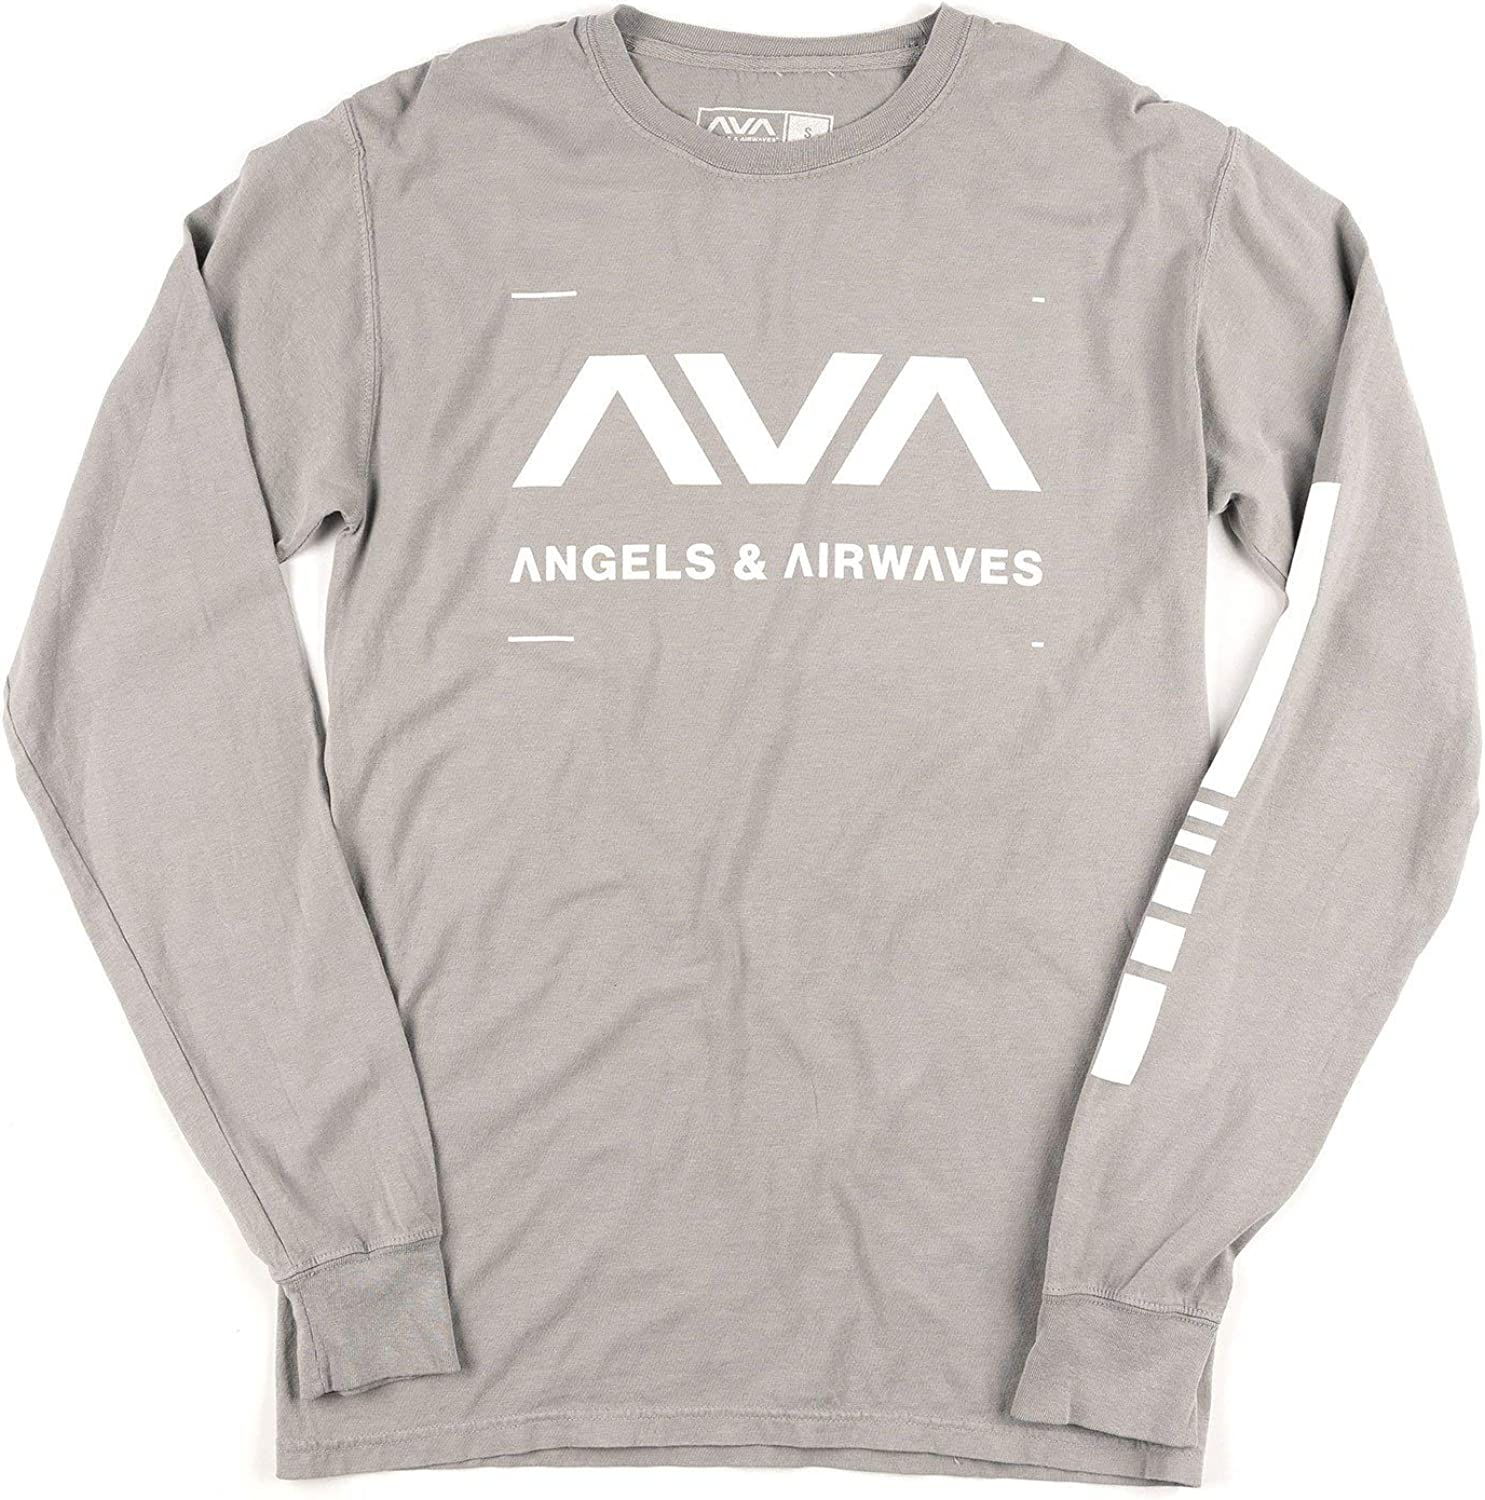 Angels and unisex Airwaves Data S T-Shirt L free shipping Concrete